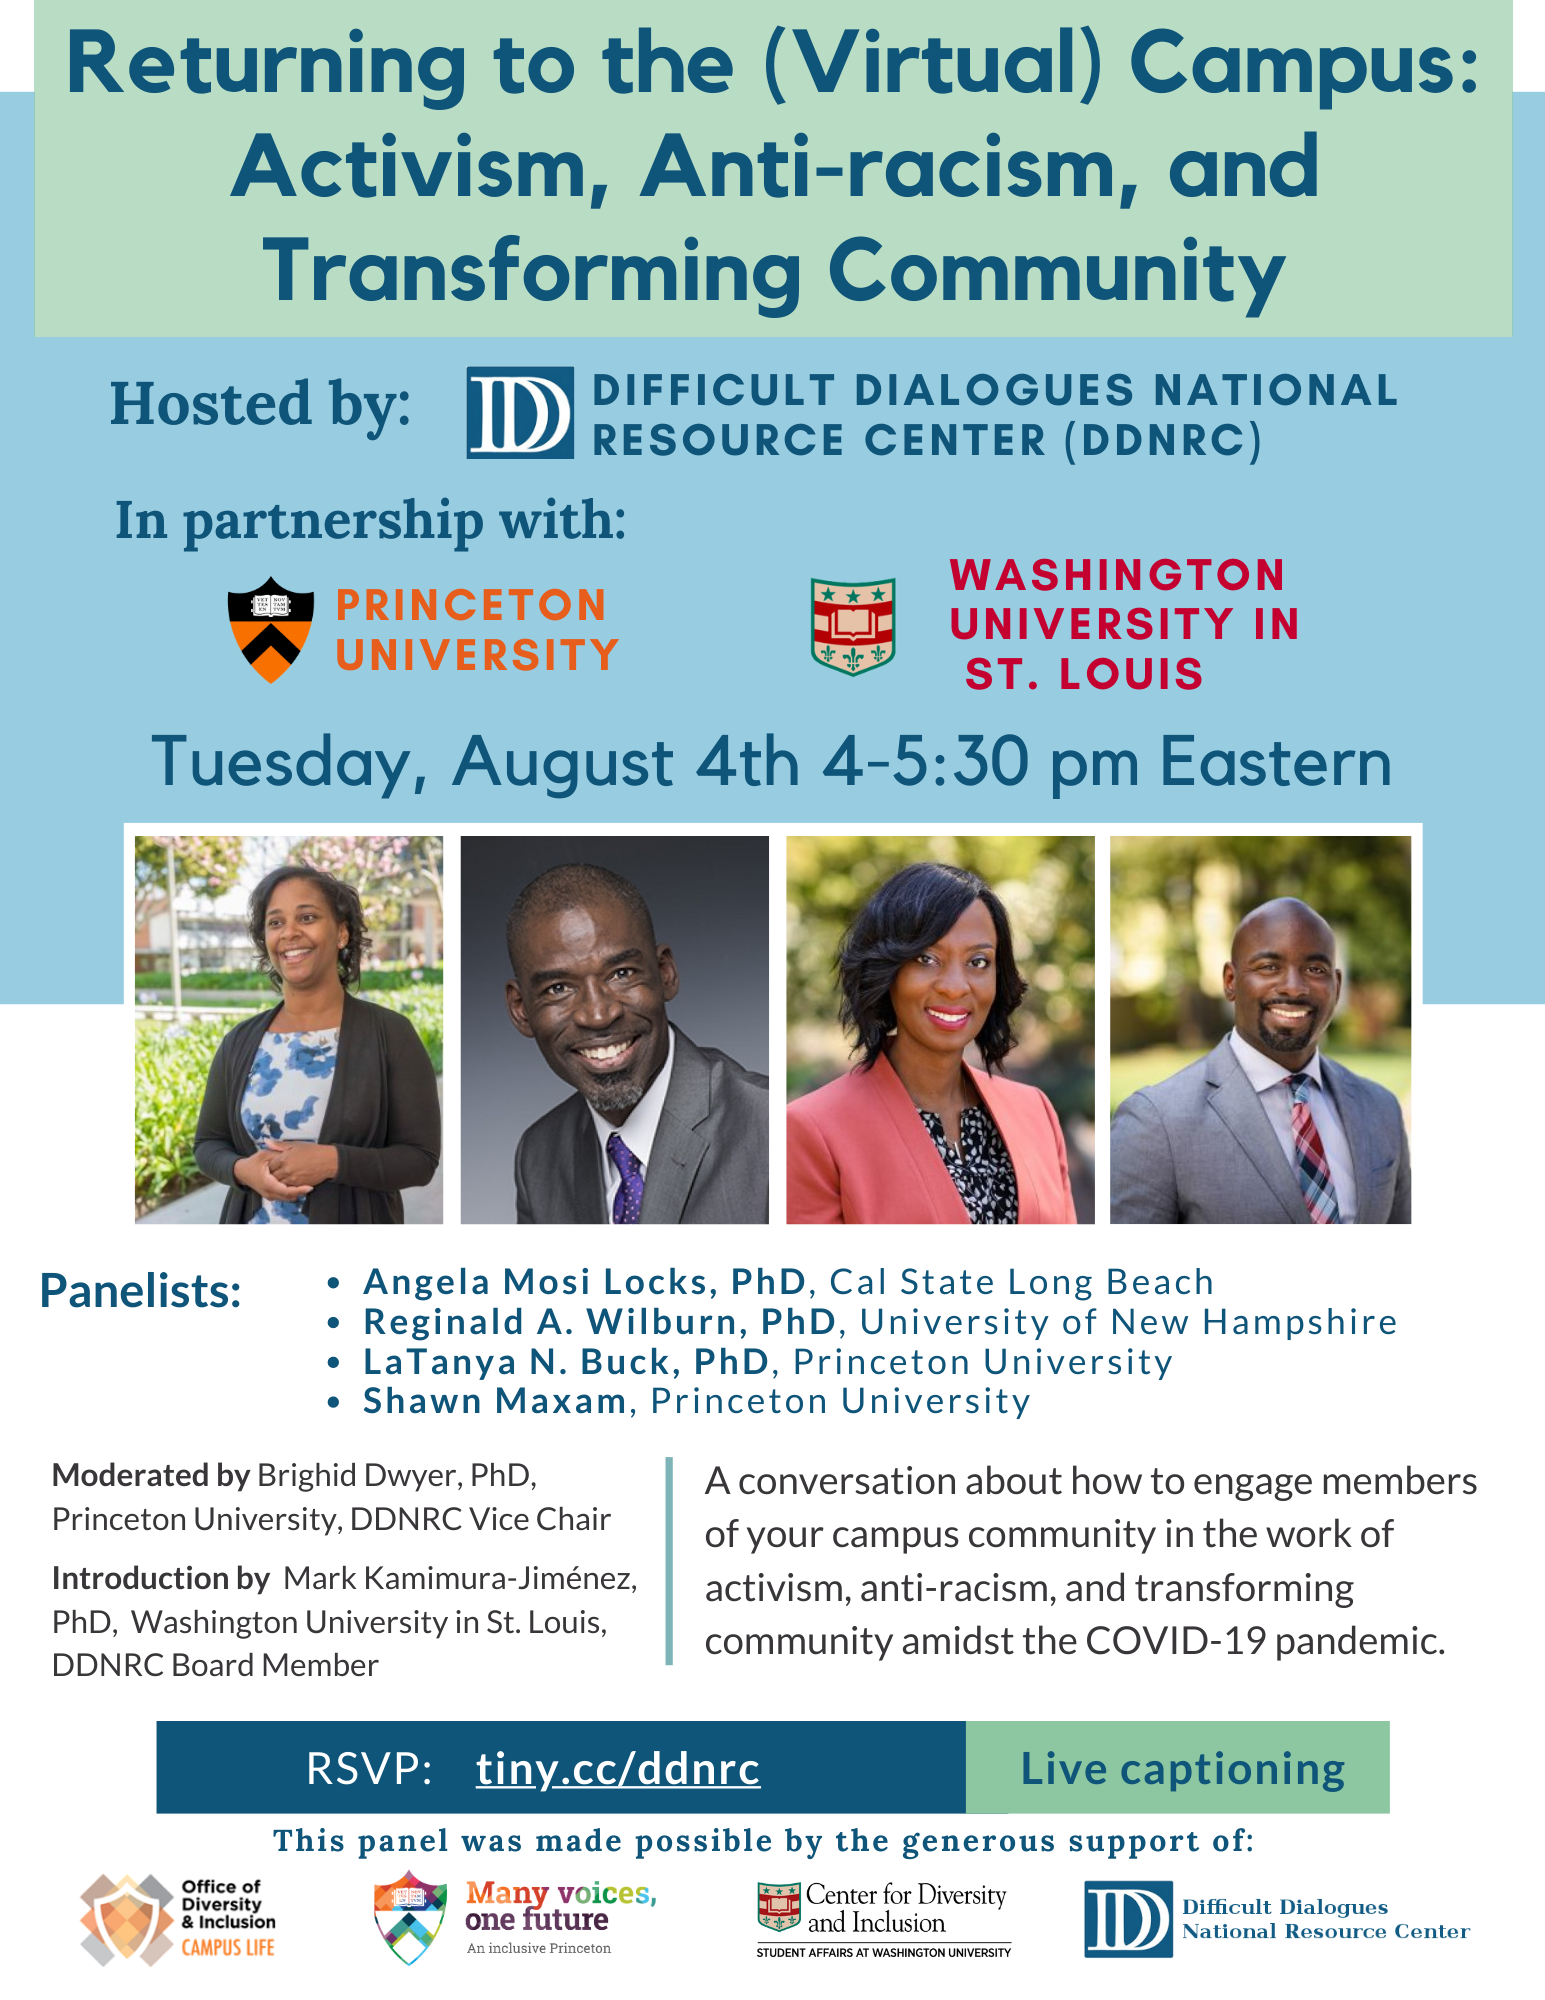 A blue and green flyer that reads: Returning to the (Virtual) Campus: Activism, Anti-racism, and Transforming Community, hosted by: Difficult Dialogues National Resource Center in partnership with Princeton University and Washington University in  St. Louis. Tuesday, August 4th4-5:30 pm Eastern with four photos of university professors and staff with the accompanying text: Panelists: Angela Mosi Locks, PhD, Cal State Long Beach Reginald A. Wilburn, PhD, University of New Hampshire LaTanya N. Buck, PhD, Princeton University Shawn Maxam,Princeton University, Moderated by Brighid Dwyer, PhD, Princeton University, DDNRC Vice Chair, Introduction by  Mark Kamimura-Jiménez, PhD,  Washington University in St. Louis, DDNRC Board Member,  A conversation about how to engage members of your campus community in the work of activism, anti-racism, and transforming community amidst the COVID-19 pandemic. RSVP: tiny.cc/ddnrc Live captioning